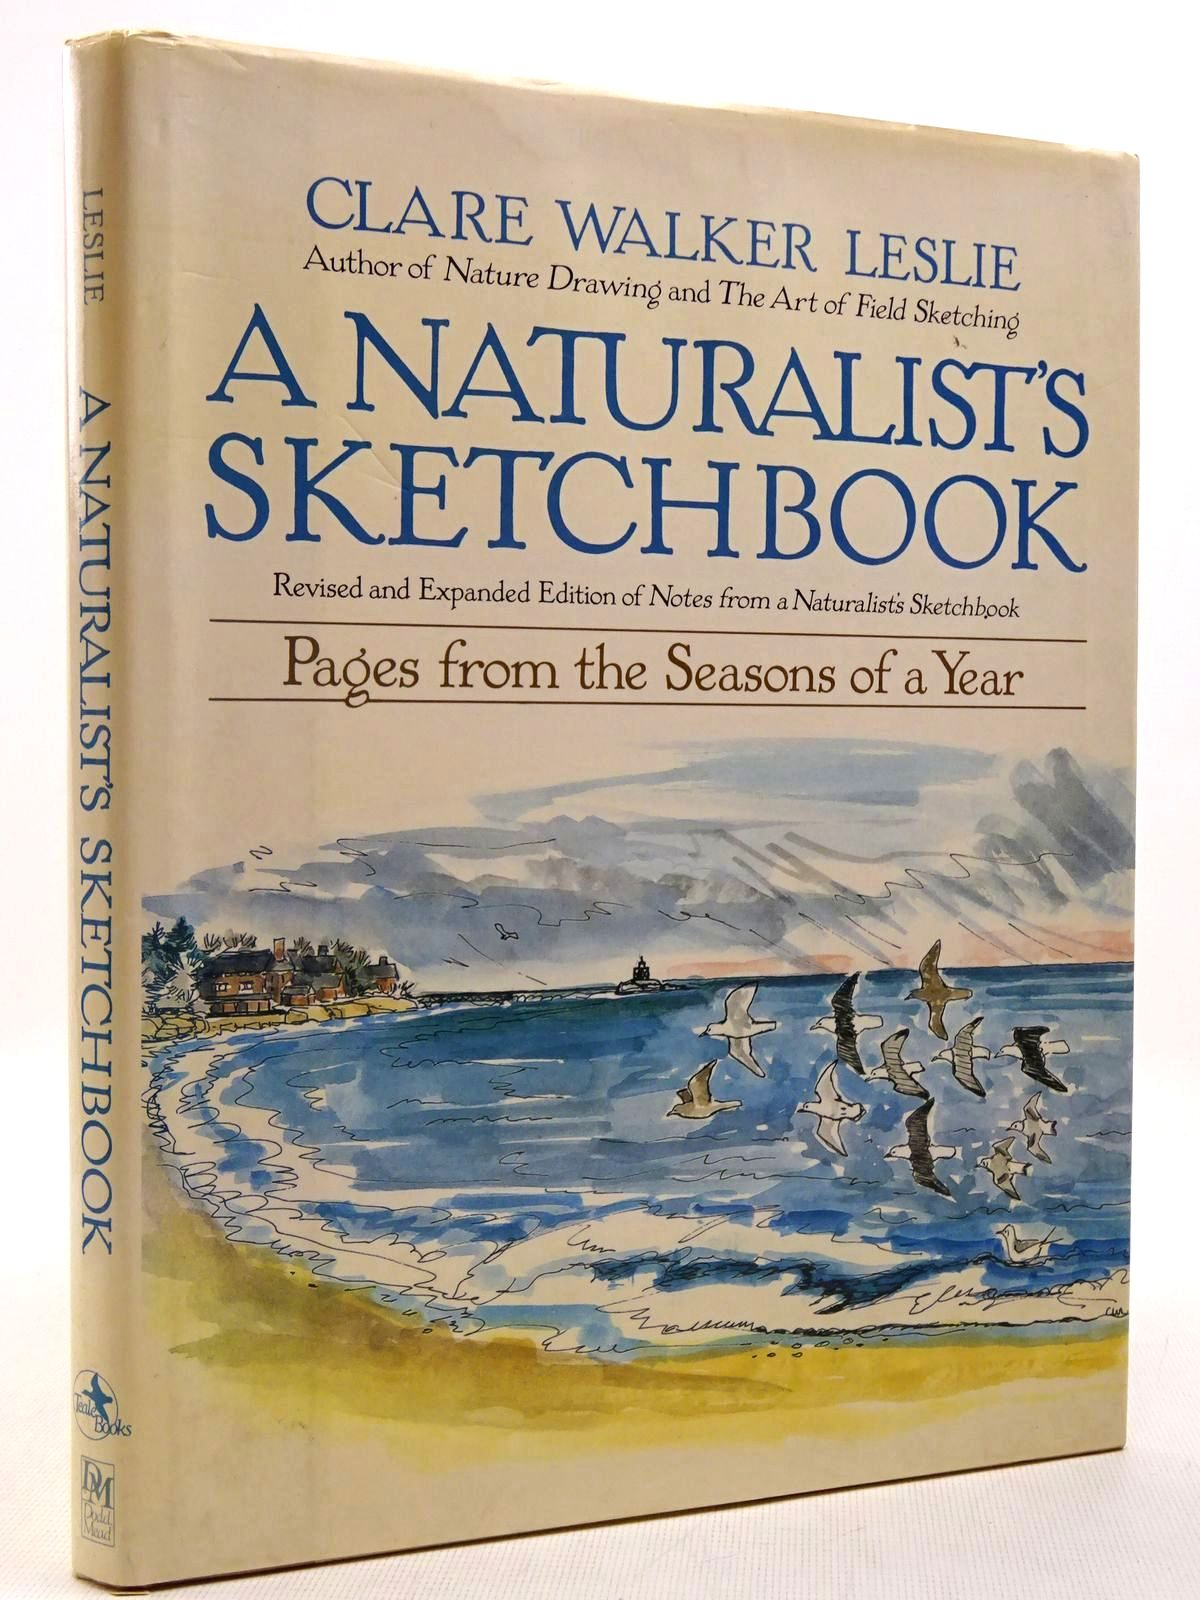 Photo of A NATURALIST'S SKETCHBOOK written by Leslie, Clare Walker illustrated by Leslie, Clare Walker published by Dodd, Mead & Company (STOCK CODE: 2129156)  for sale by Stella & Rose's Books